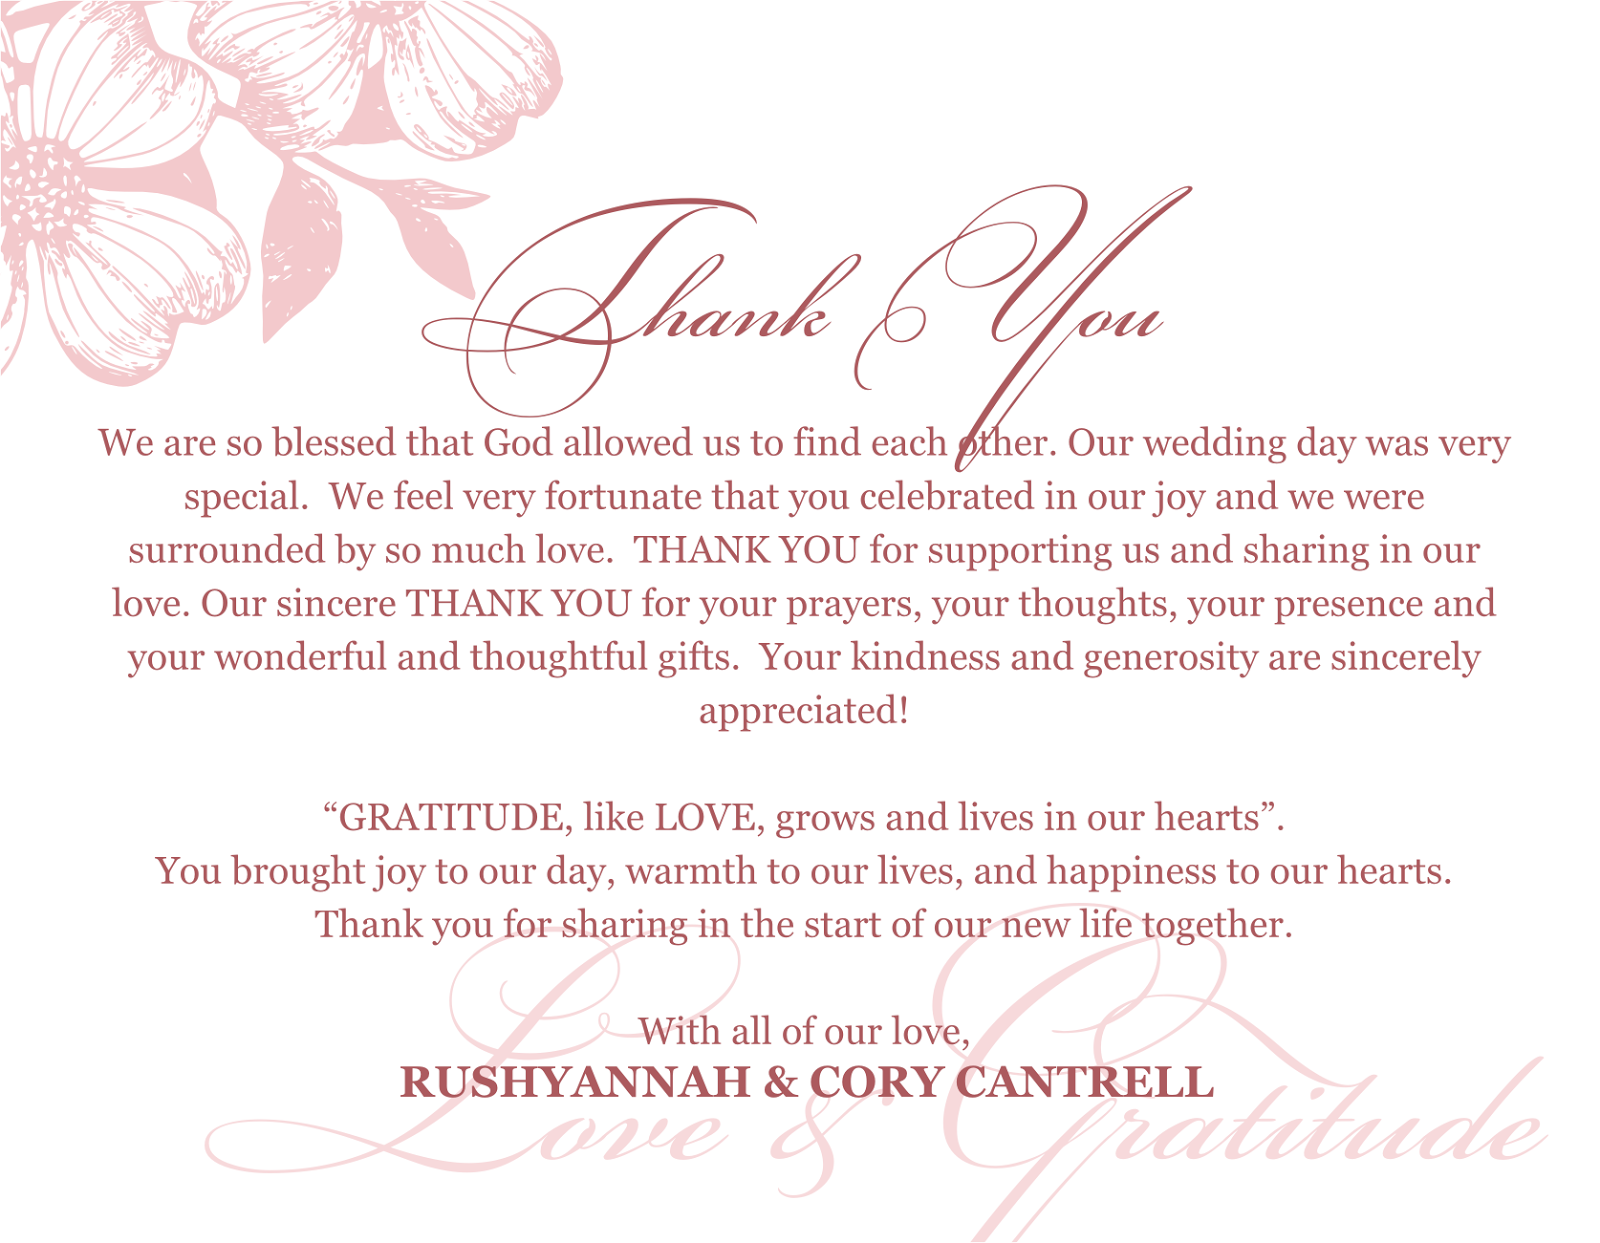 weddingthankyoucardsayingspng Thank you notes – Wedding Card Thank You Sayings